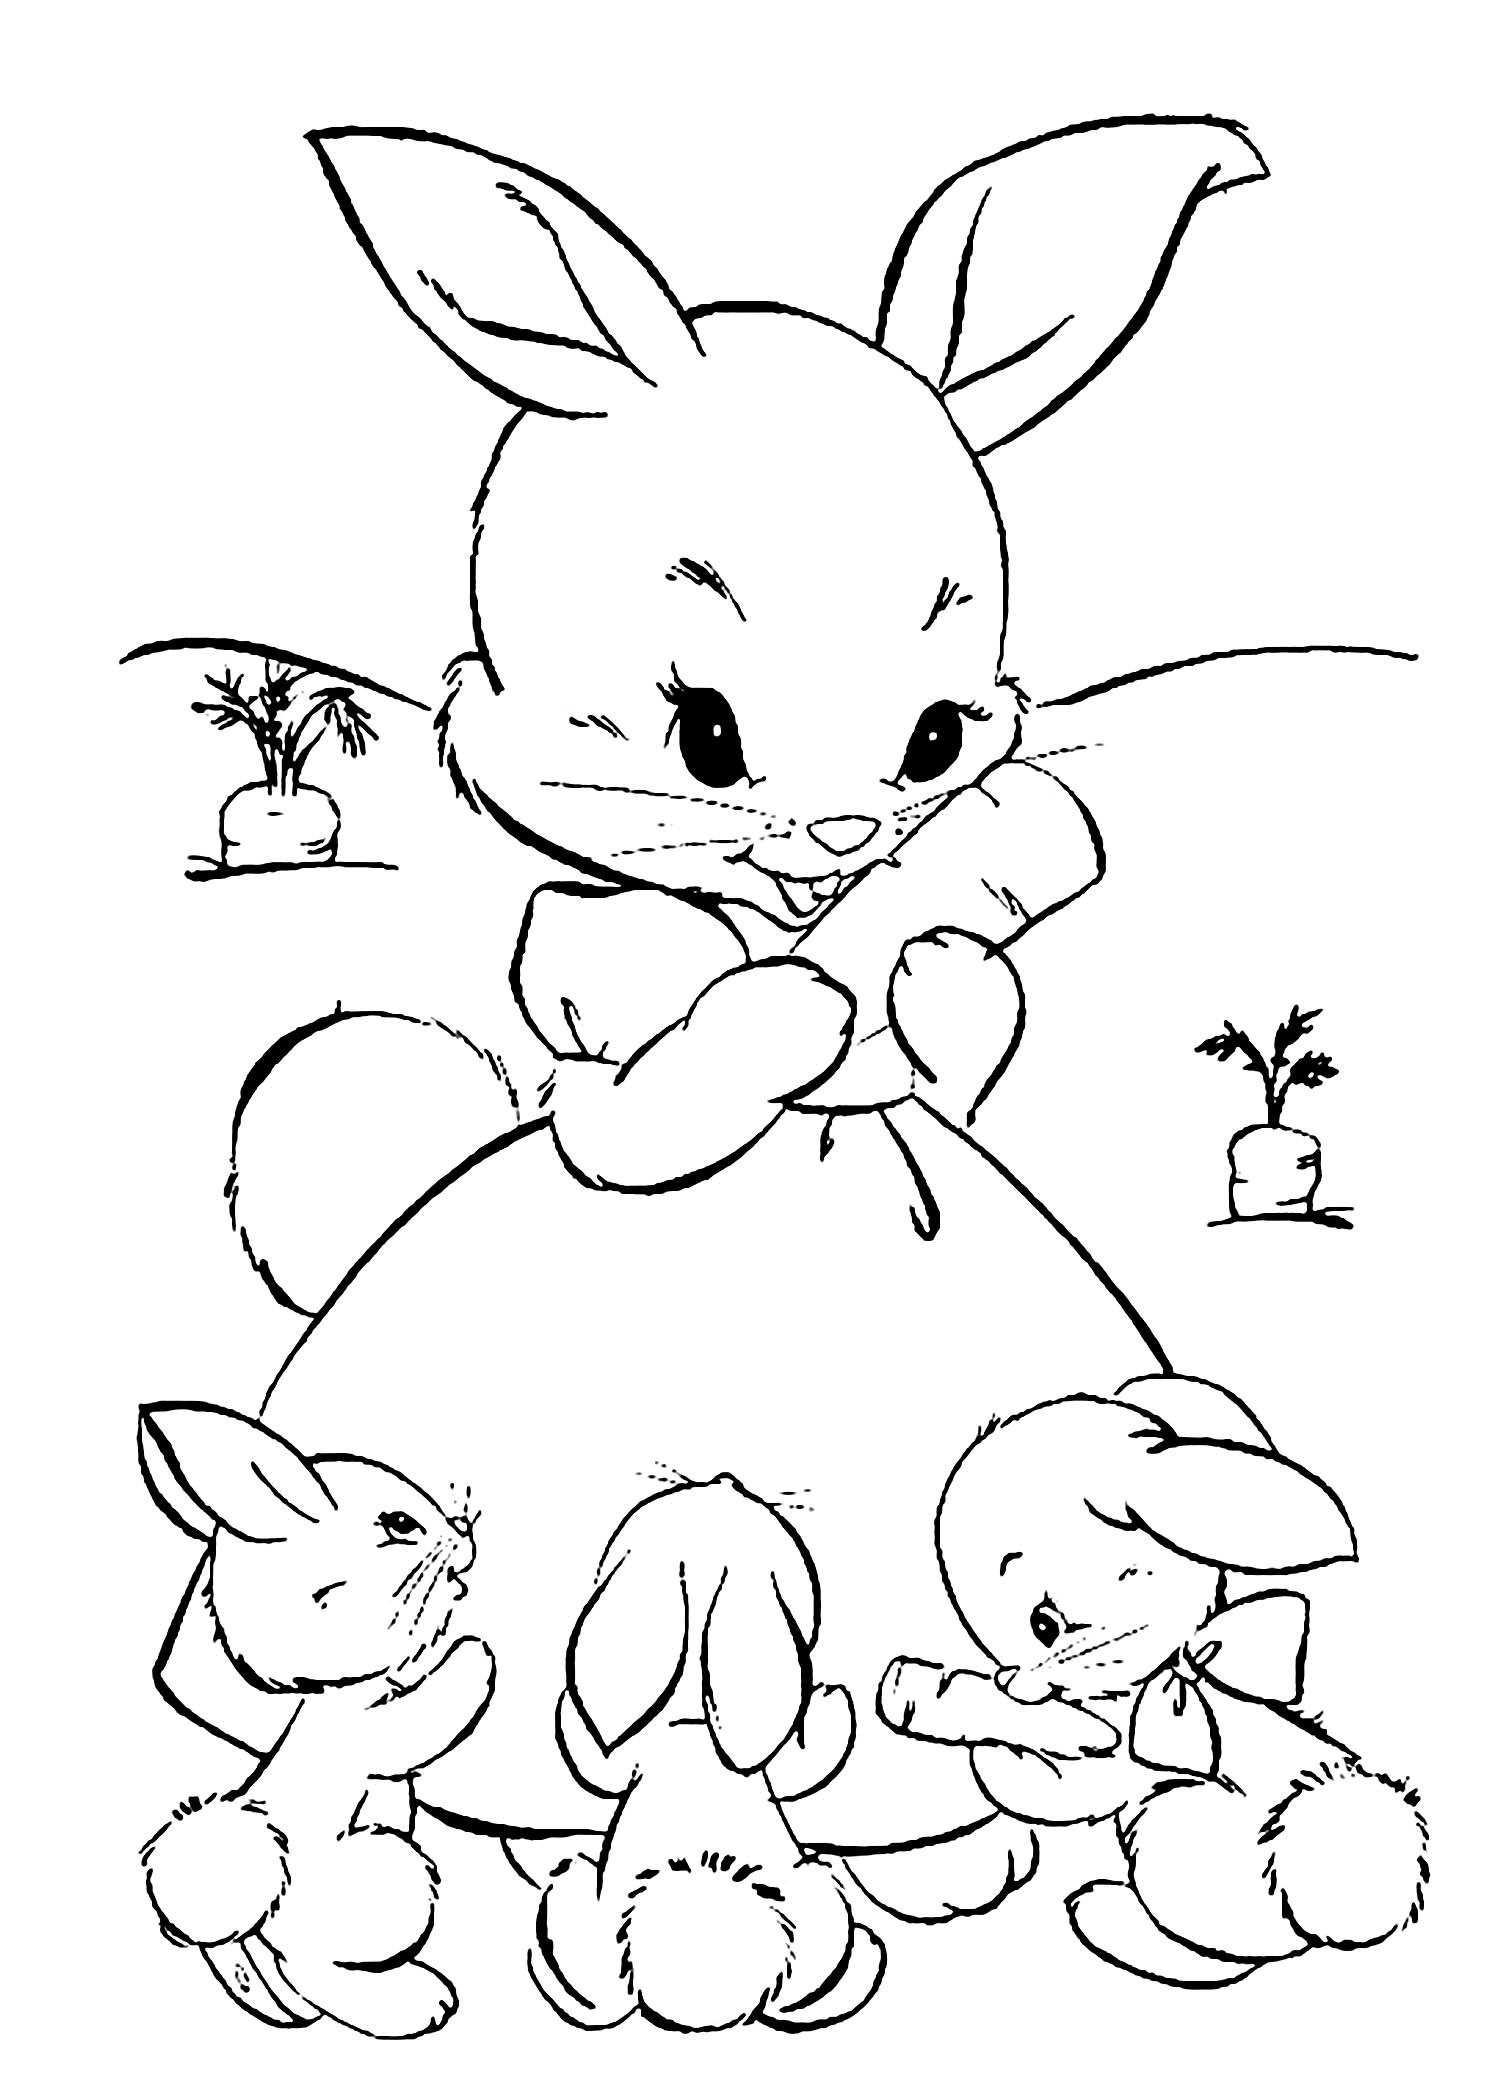 coloring pages of a bunny 60 rabbit shape templates and crafts colouring pages pages of coloring bunny a